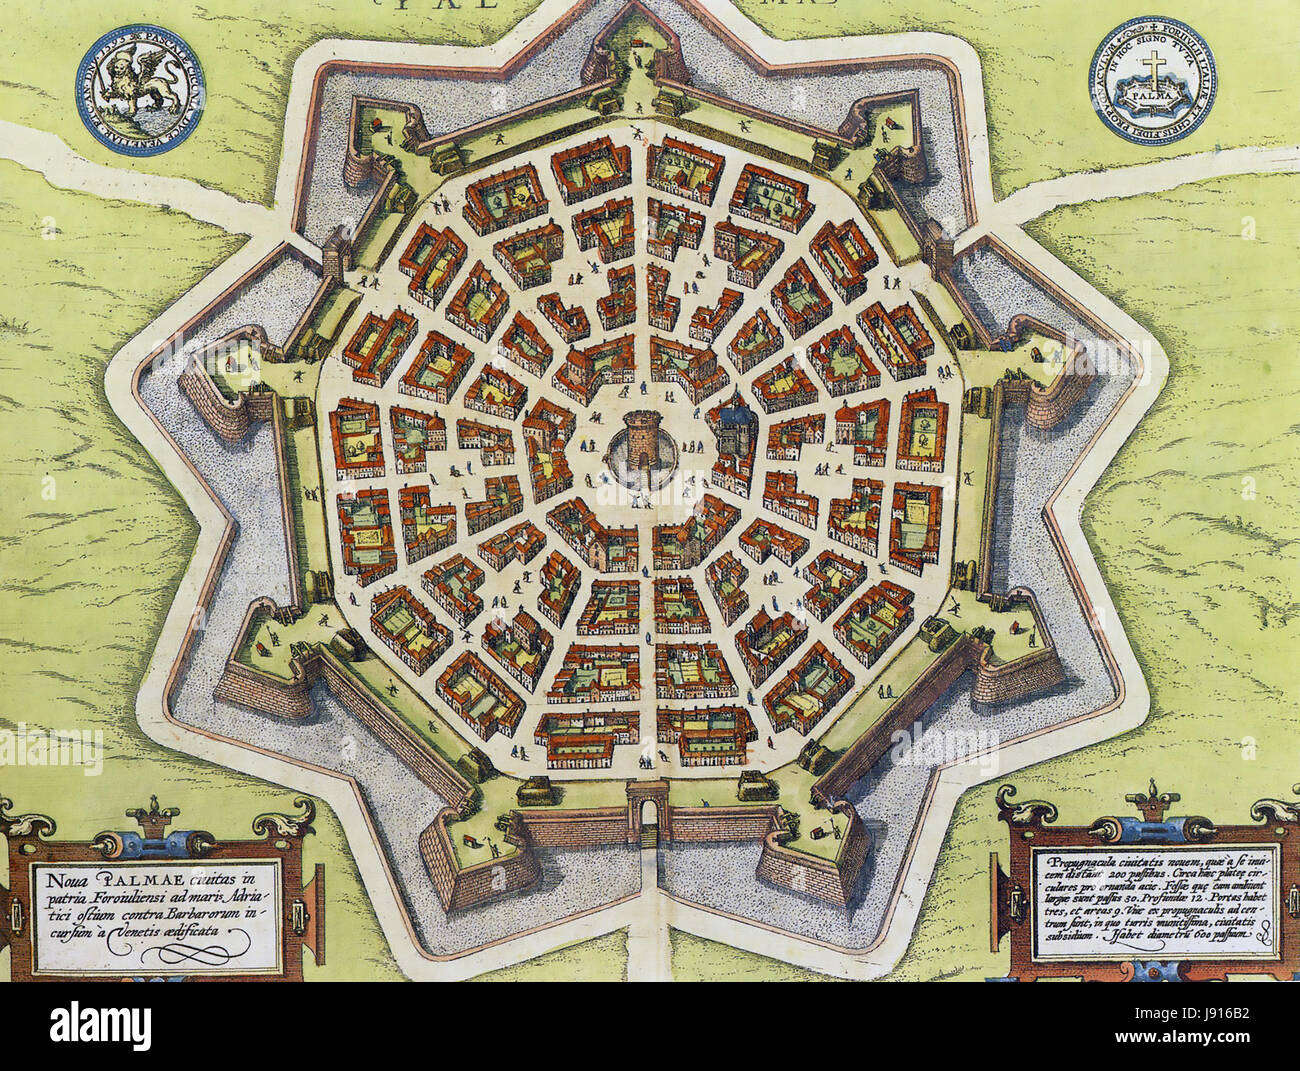 PALMANOVA, north east Italy. A 17th century map showing the star-shaped bastion defences designed by Vincenzo Scamozzi. - Stock Image